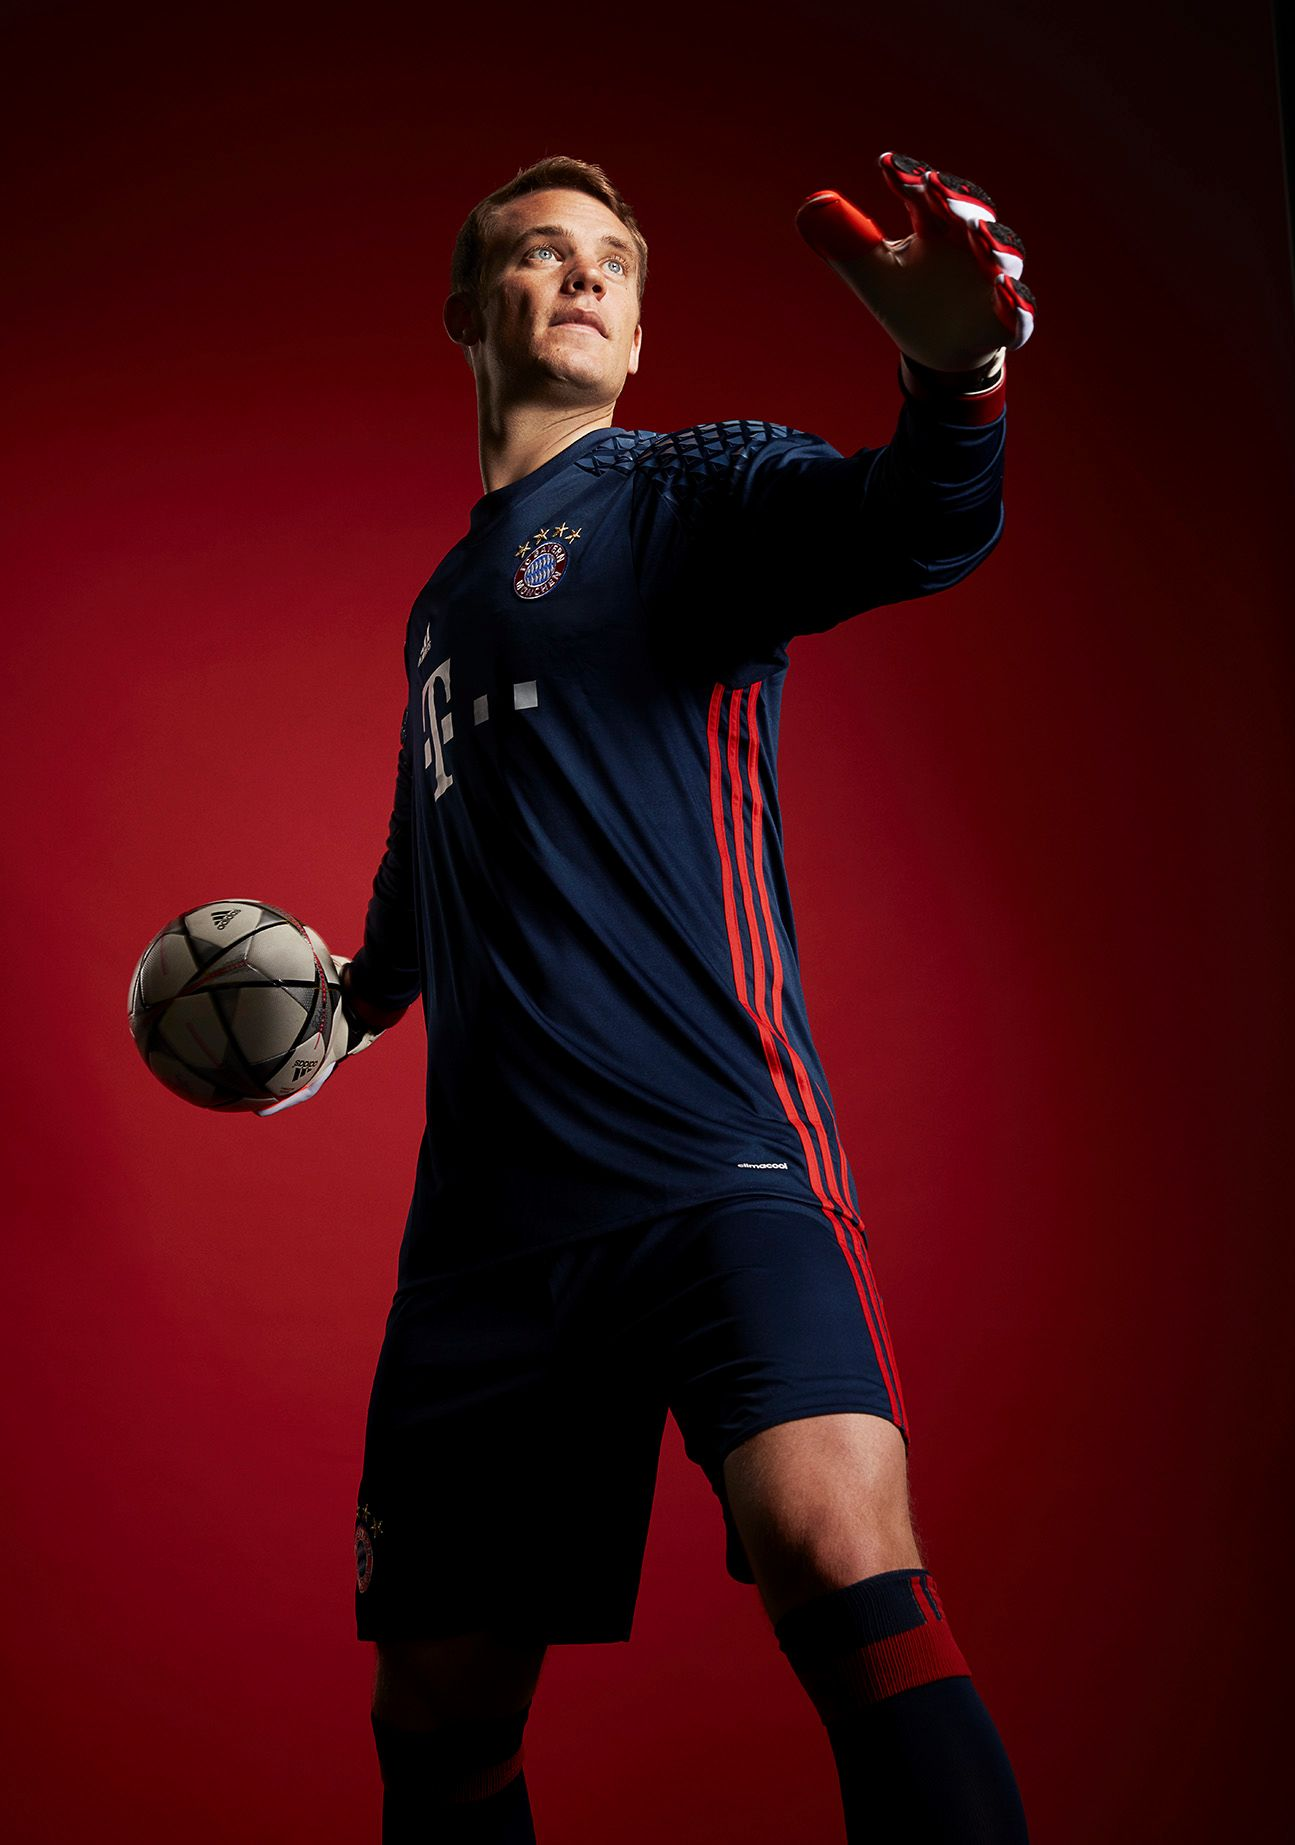 Crazy Wallpapers For Iphone X Crazy Cool Groovy Manuel Neuer On Espn Mag